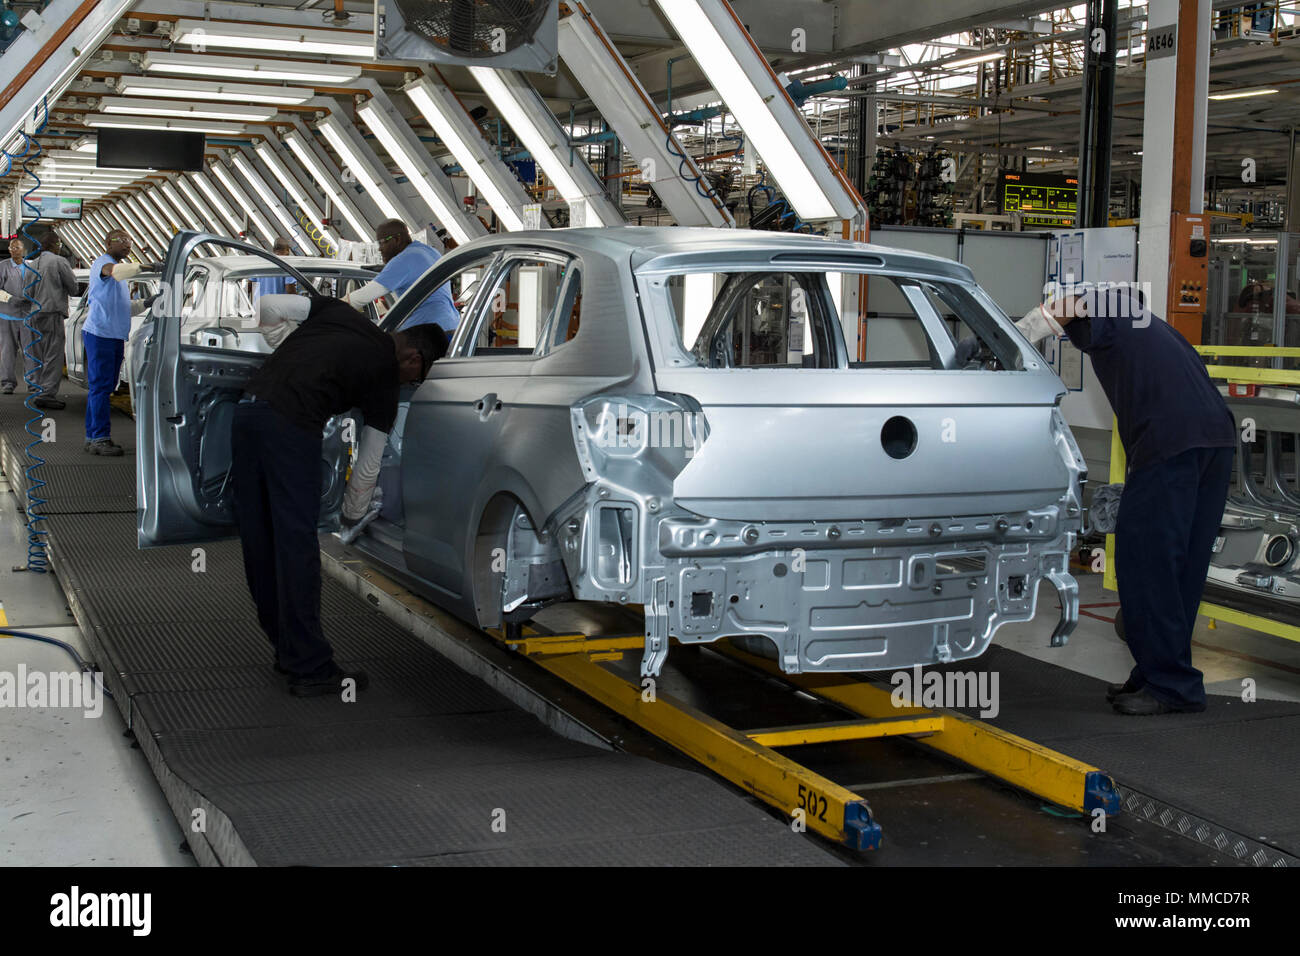 Car Manufacturers In South Africa 10 May 2018 South Africa Uitenhage Workers Of Automotive